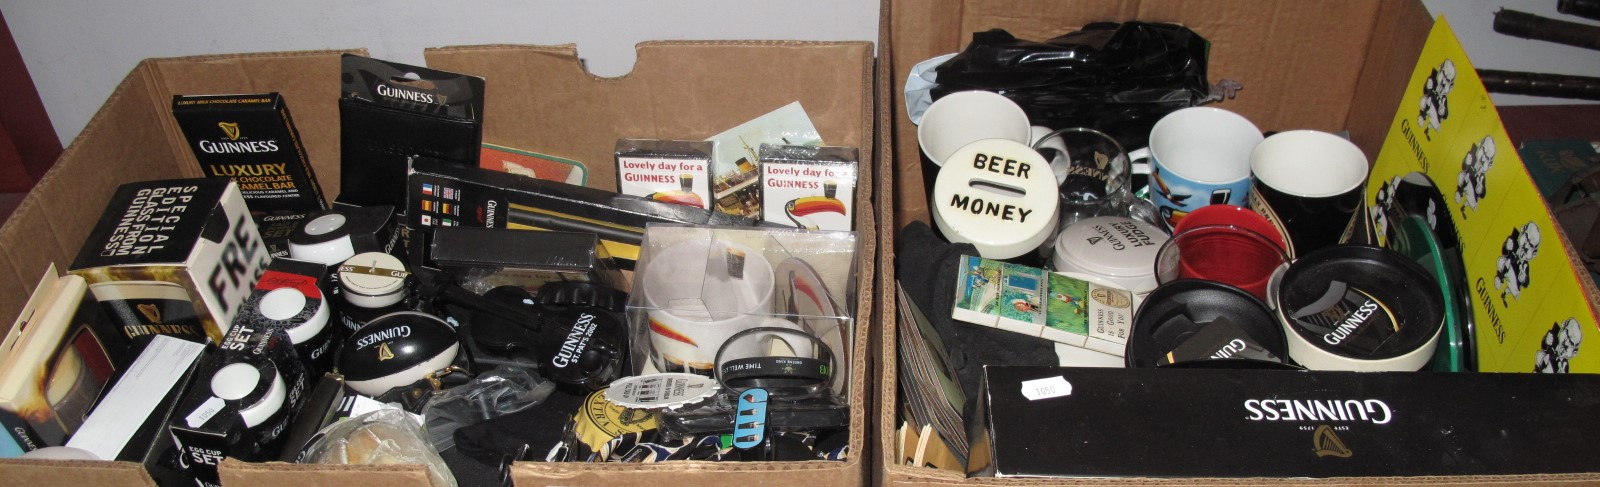 Lot 1050 - Guinness Memorabilia, to include socks, candle, tie, flute, coasters.